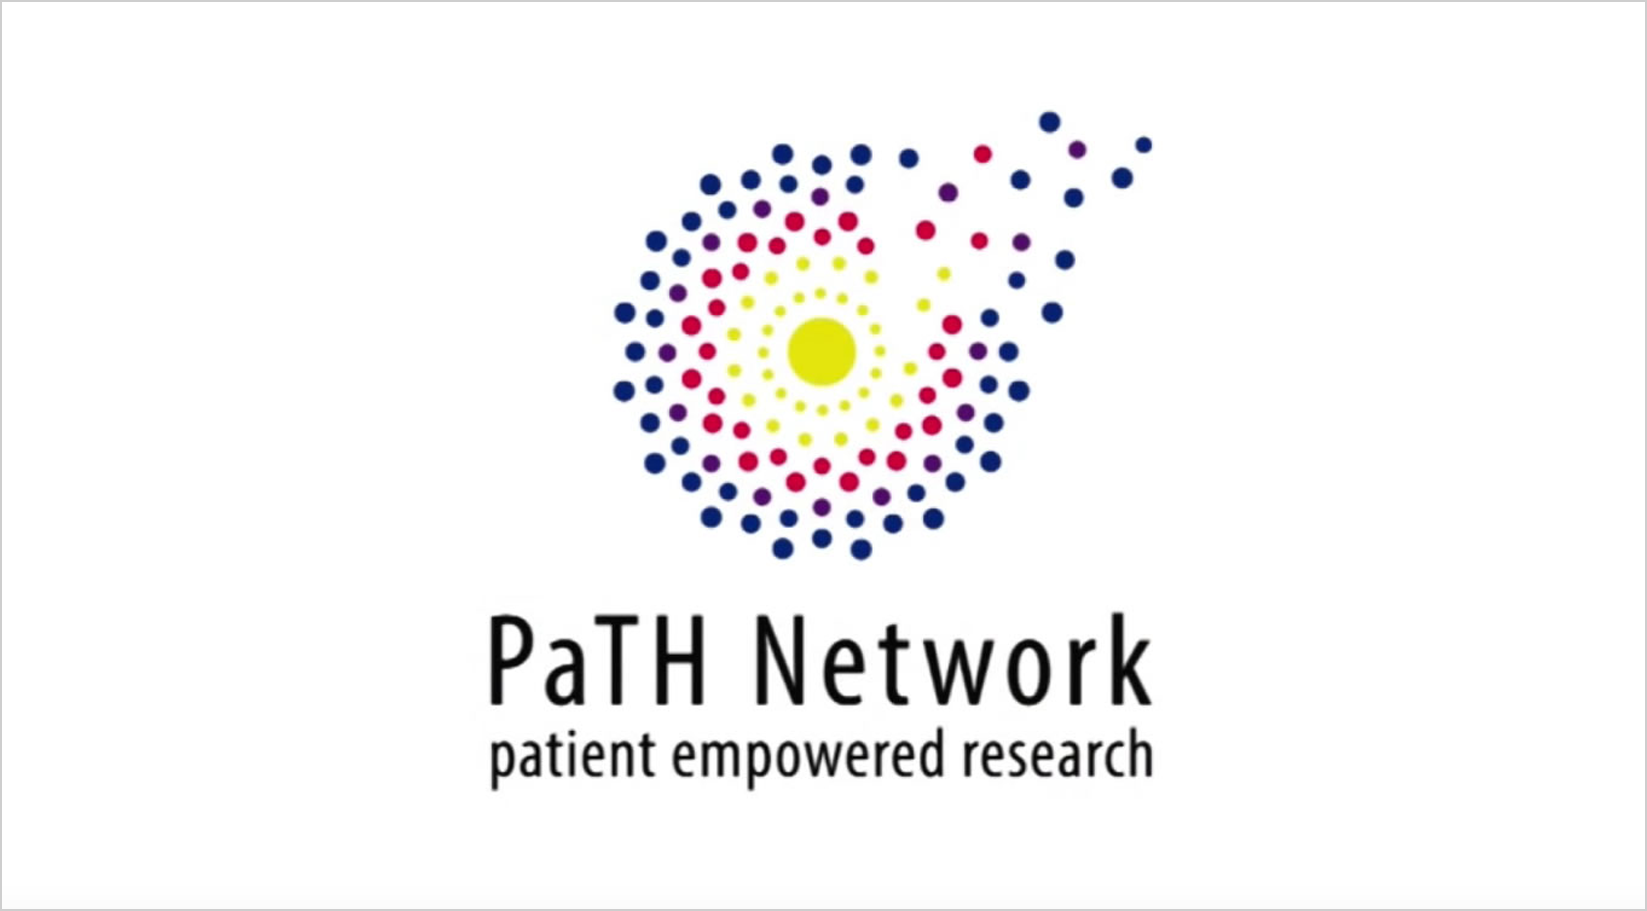 pathnetwork